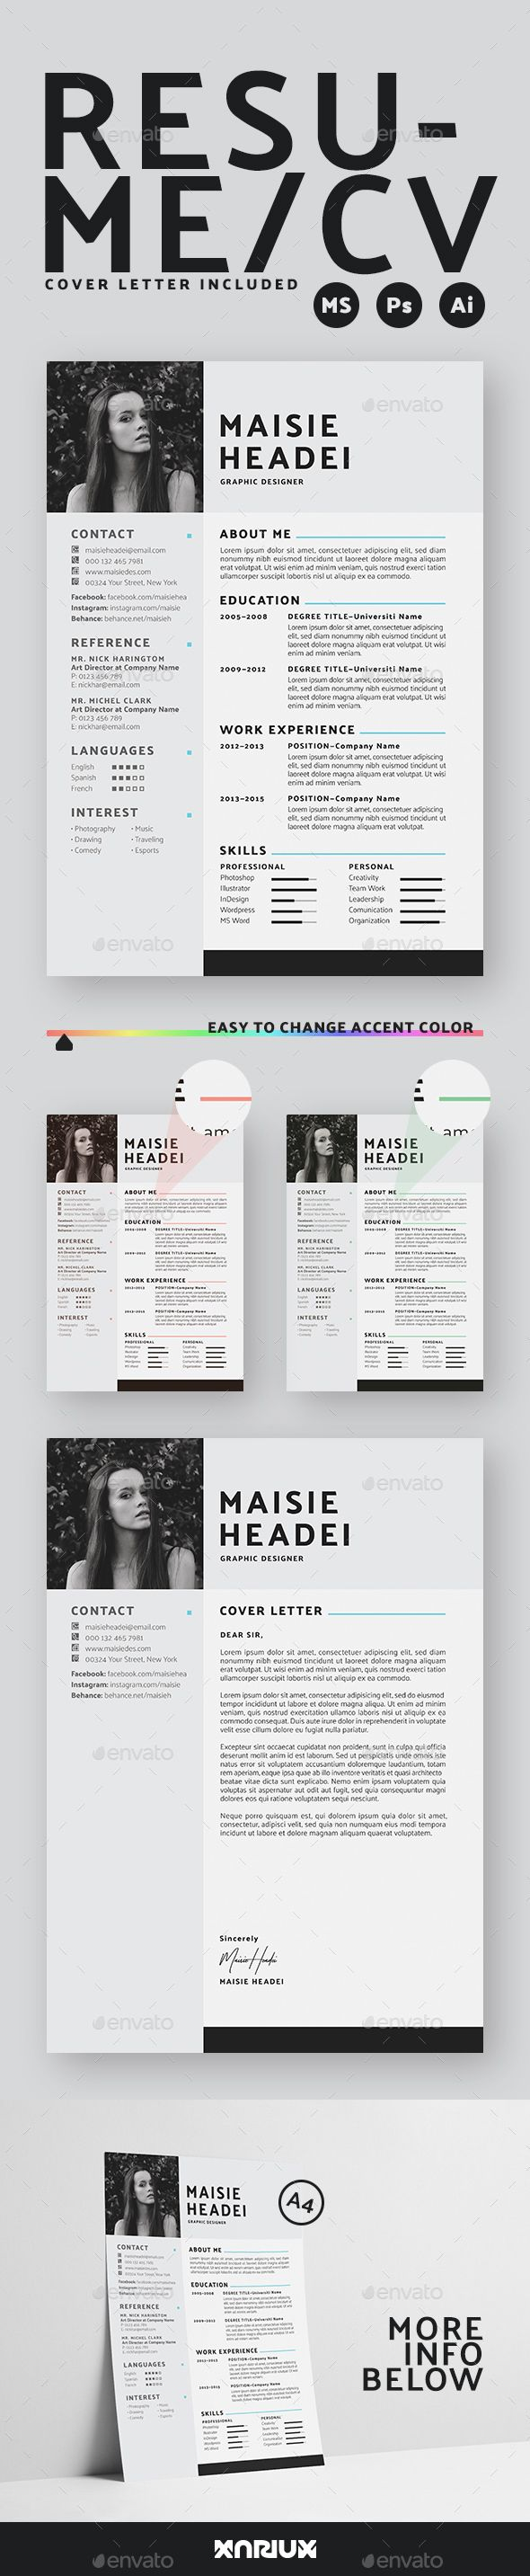 Resume Template PSD, AI, EPS, MS Word